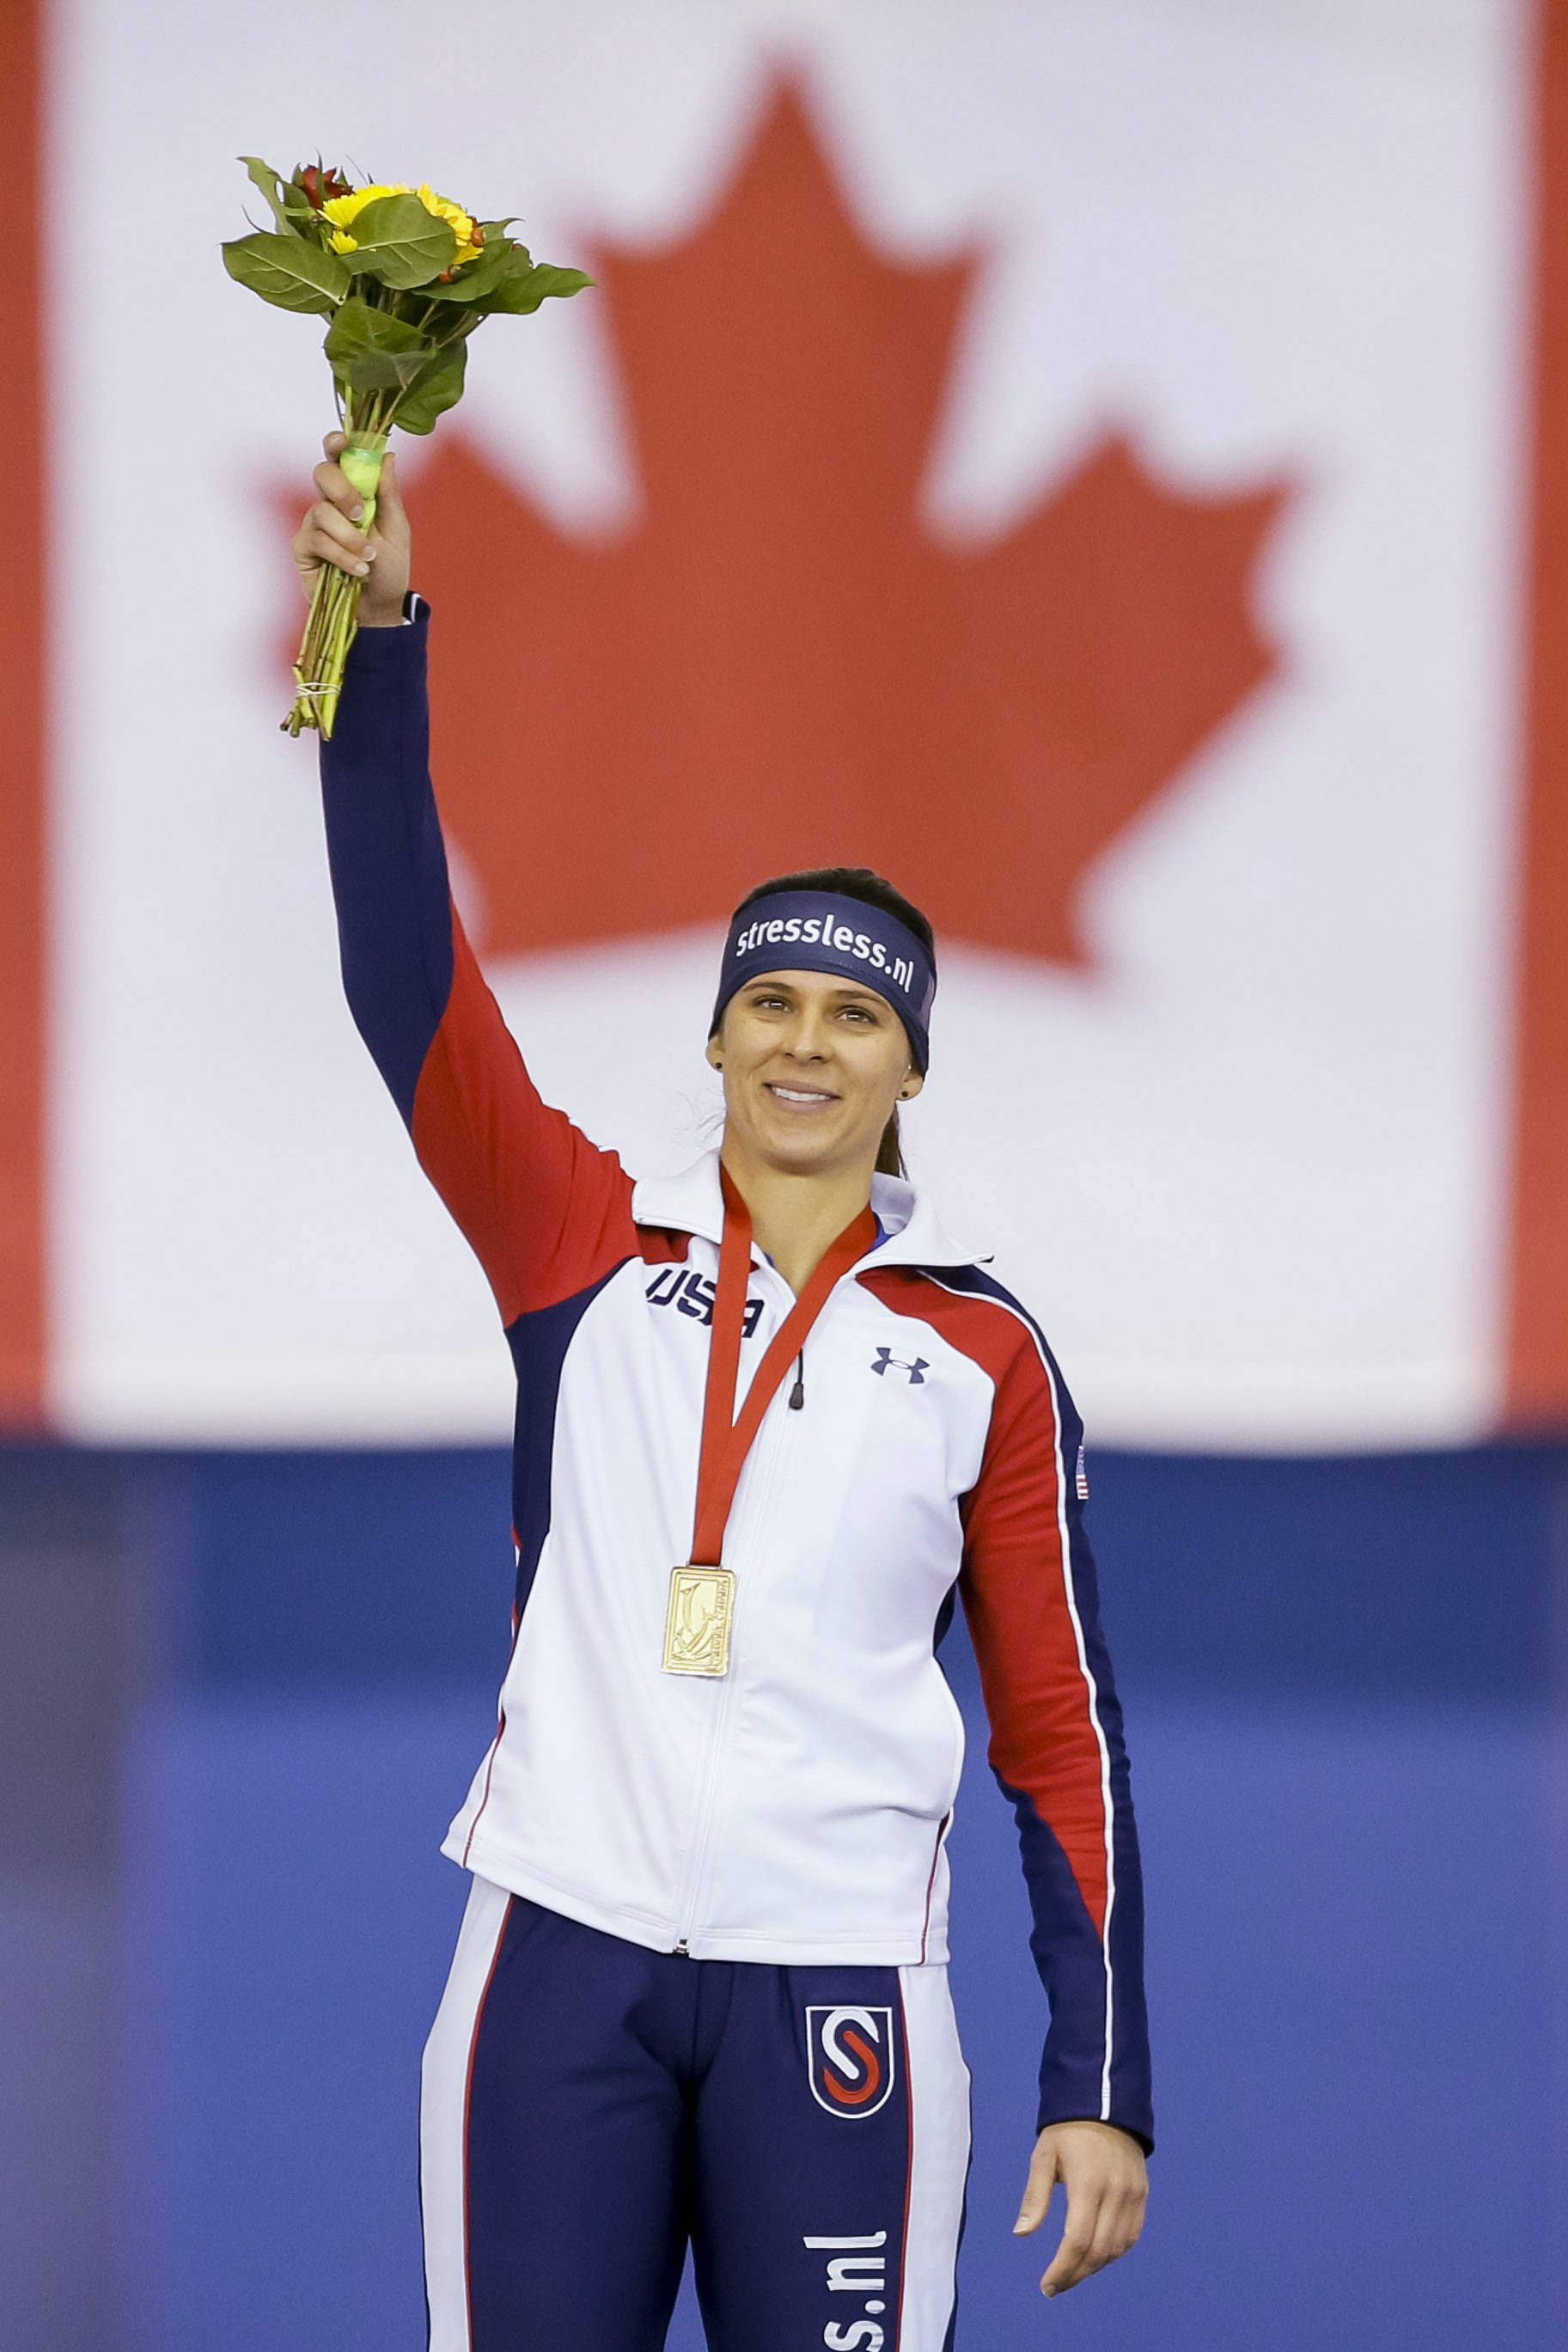 Brittany Bowe, of the United States, waves atop the podium after skating to a new world record of 1 minute, 51:59 seconds during the women's 1,500 meters at the World Cup speedskating event in Calgary, Alberta, Sunday, Nov. 15, 2015. (Lyle Aspinall/The Canadian Press via AP)